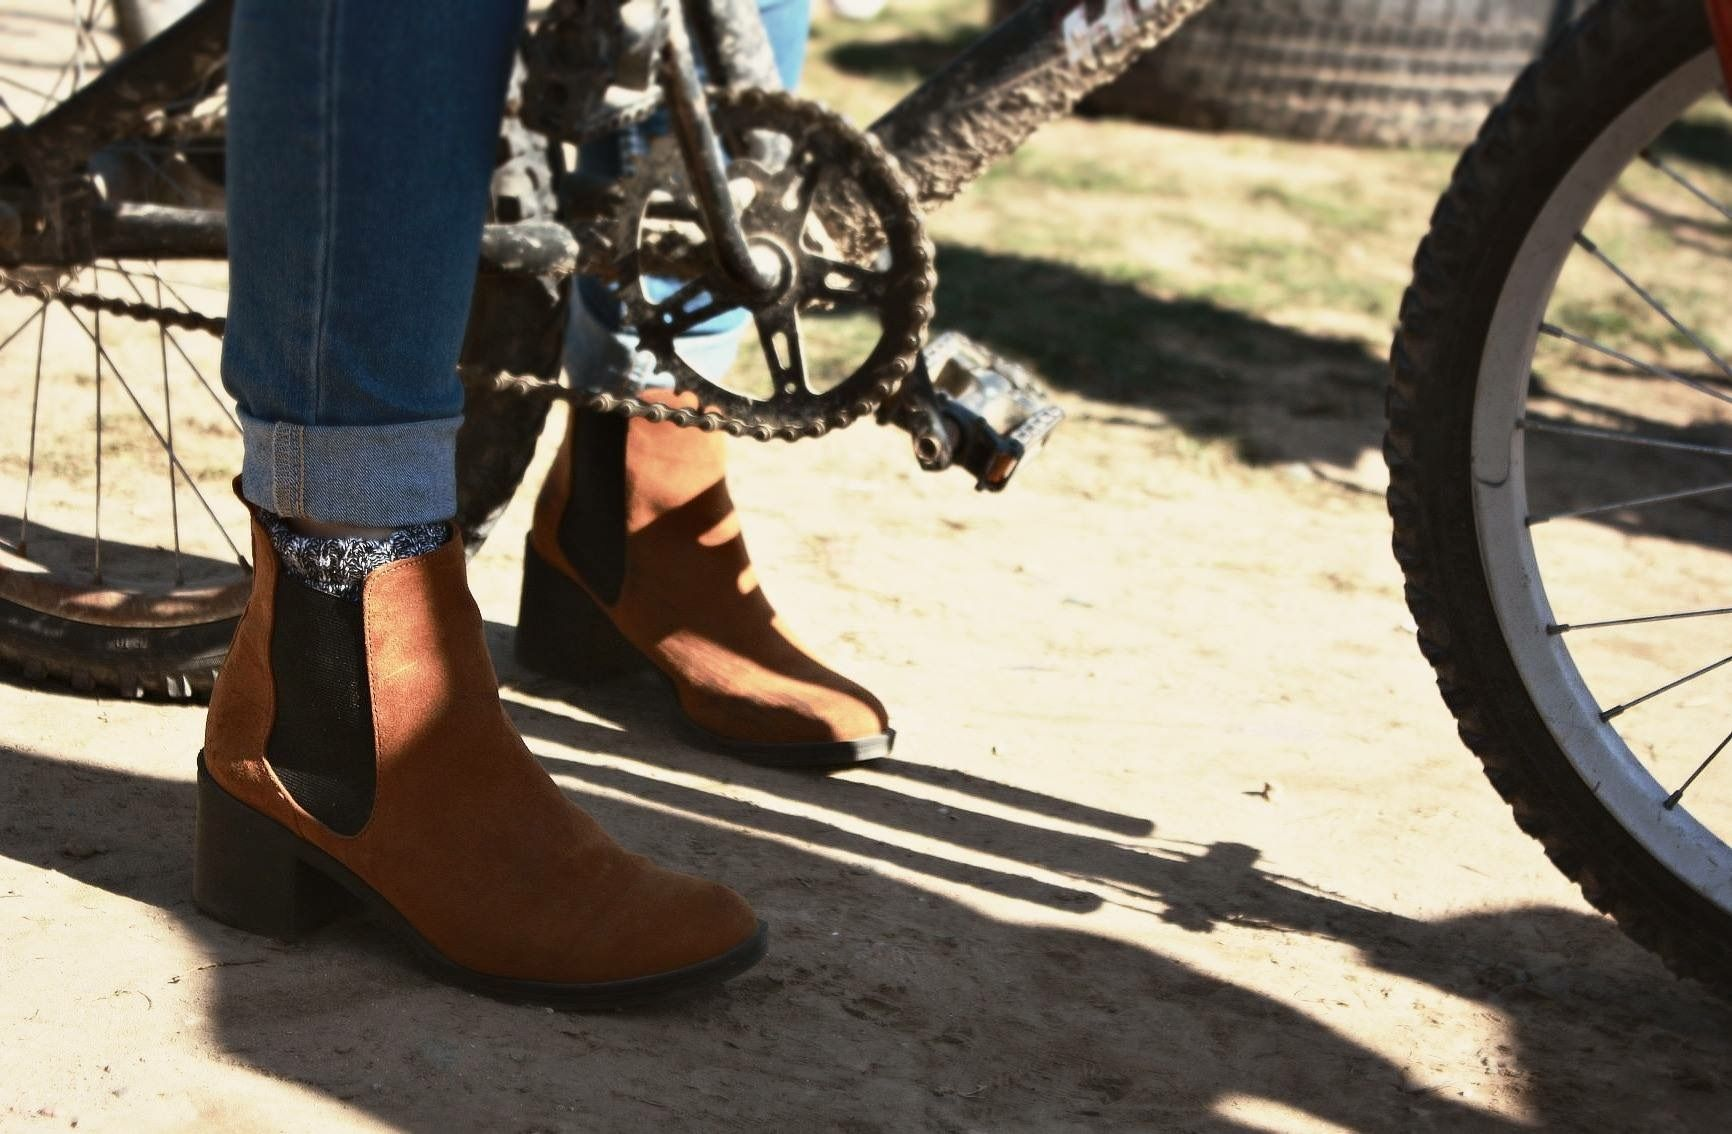 More Knitting Wheel Fashions : Autumn inspired photography. fall fashion. chelsea boots folded